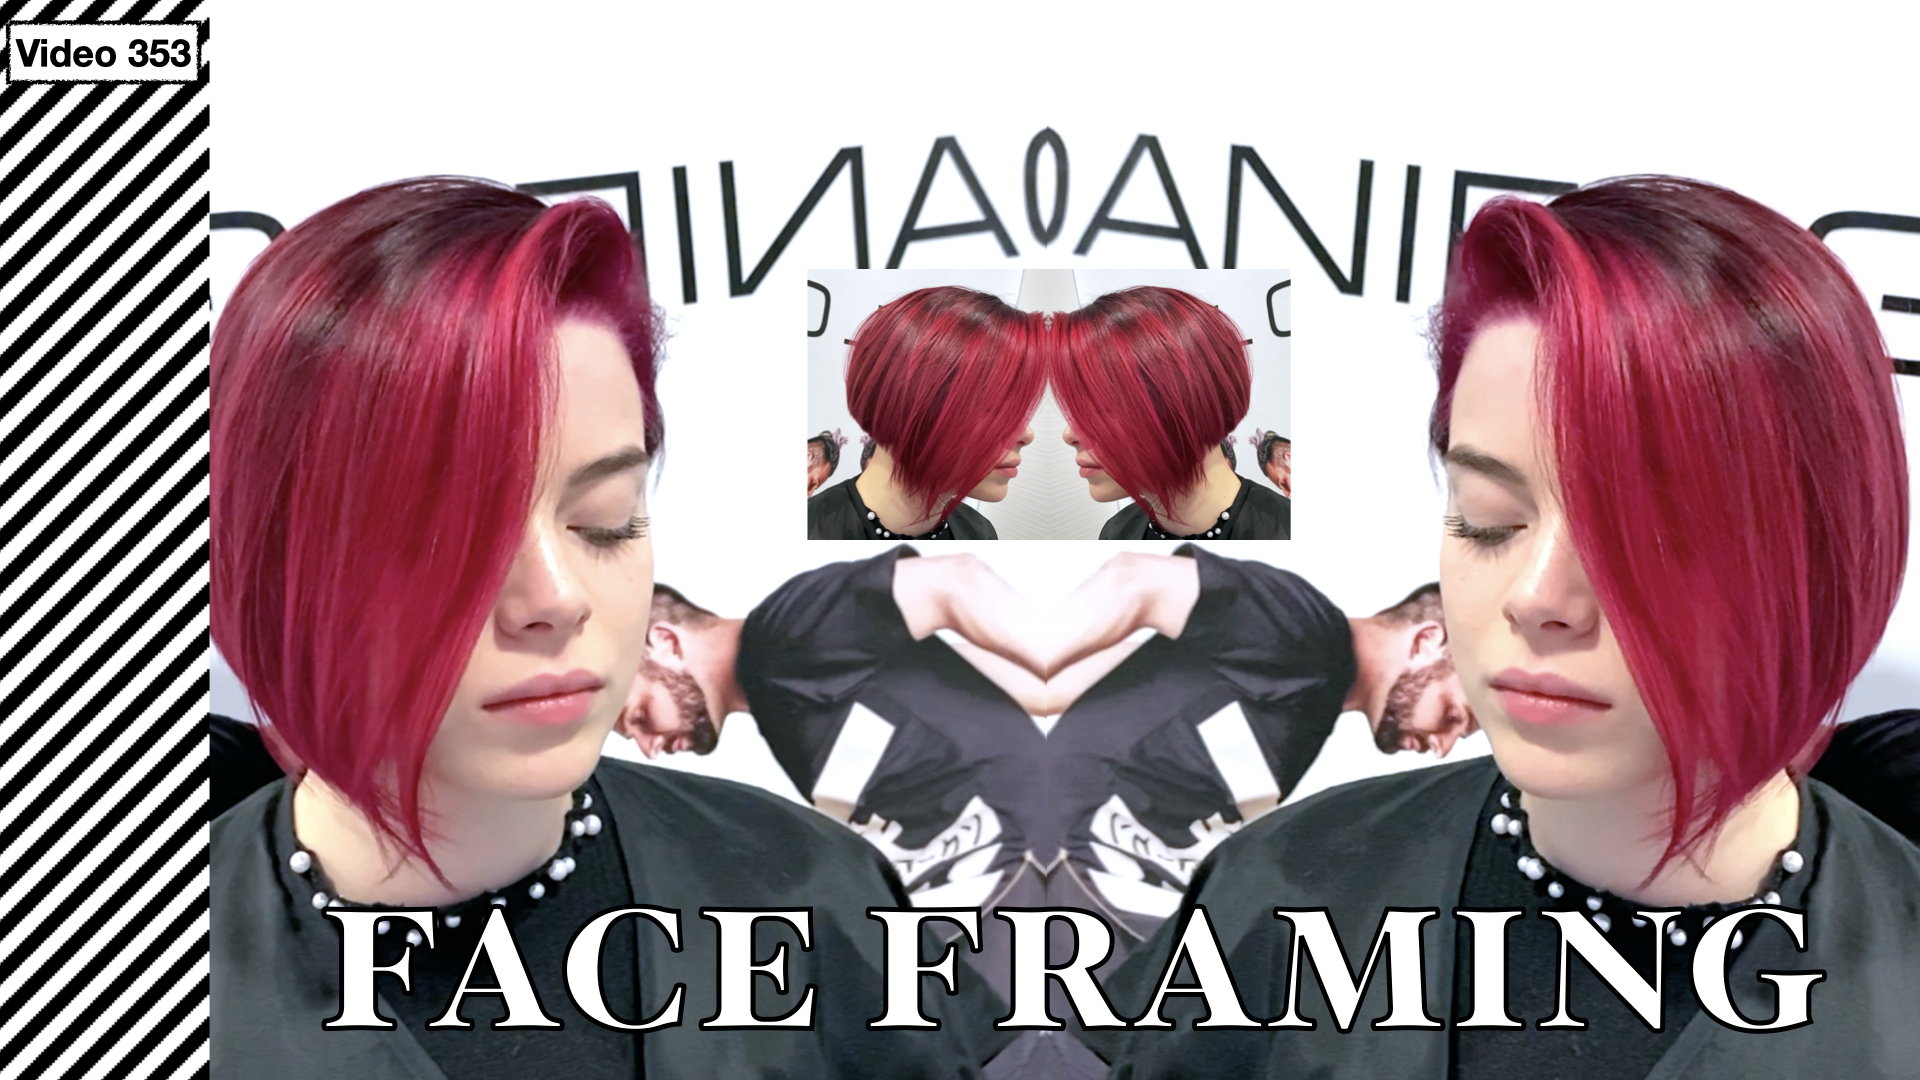 Faceframing